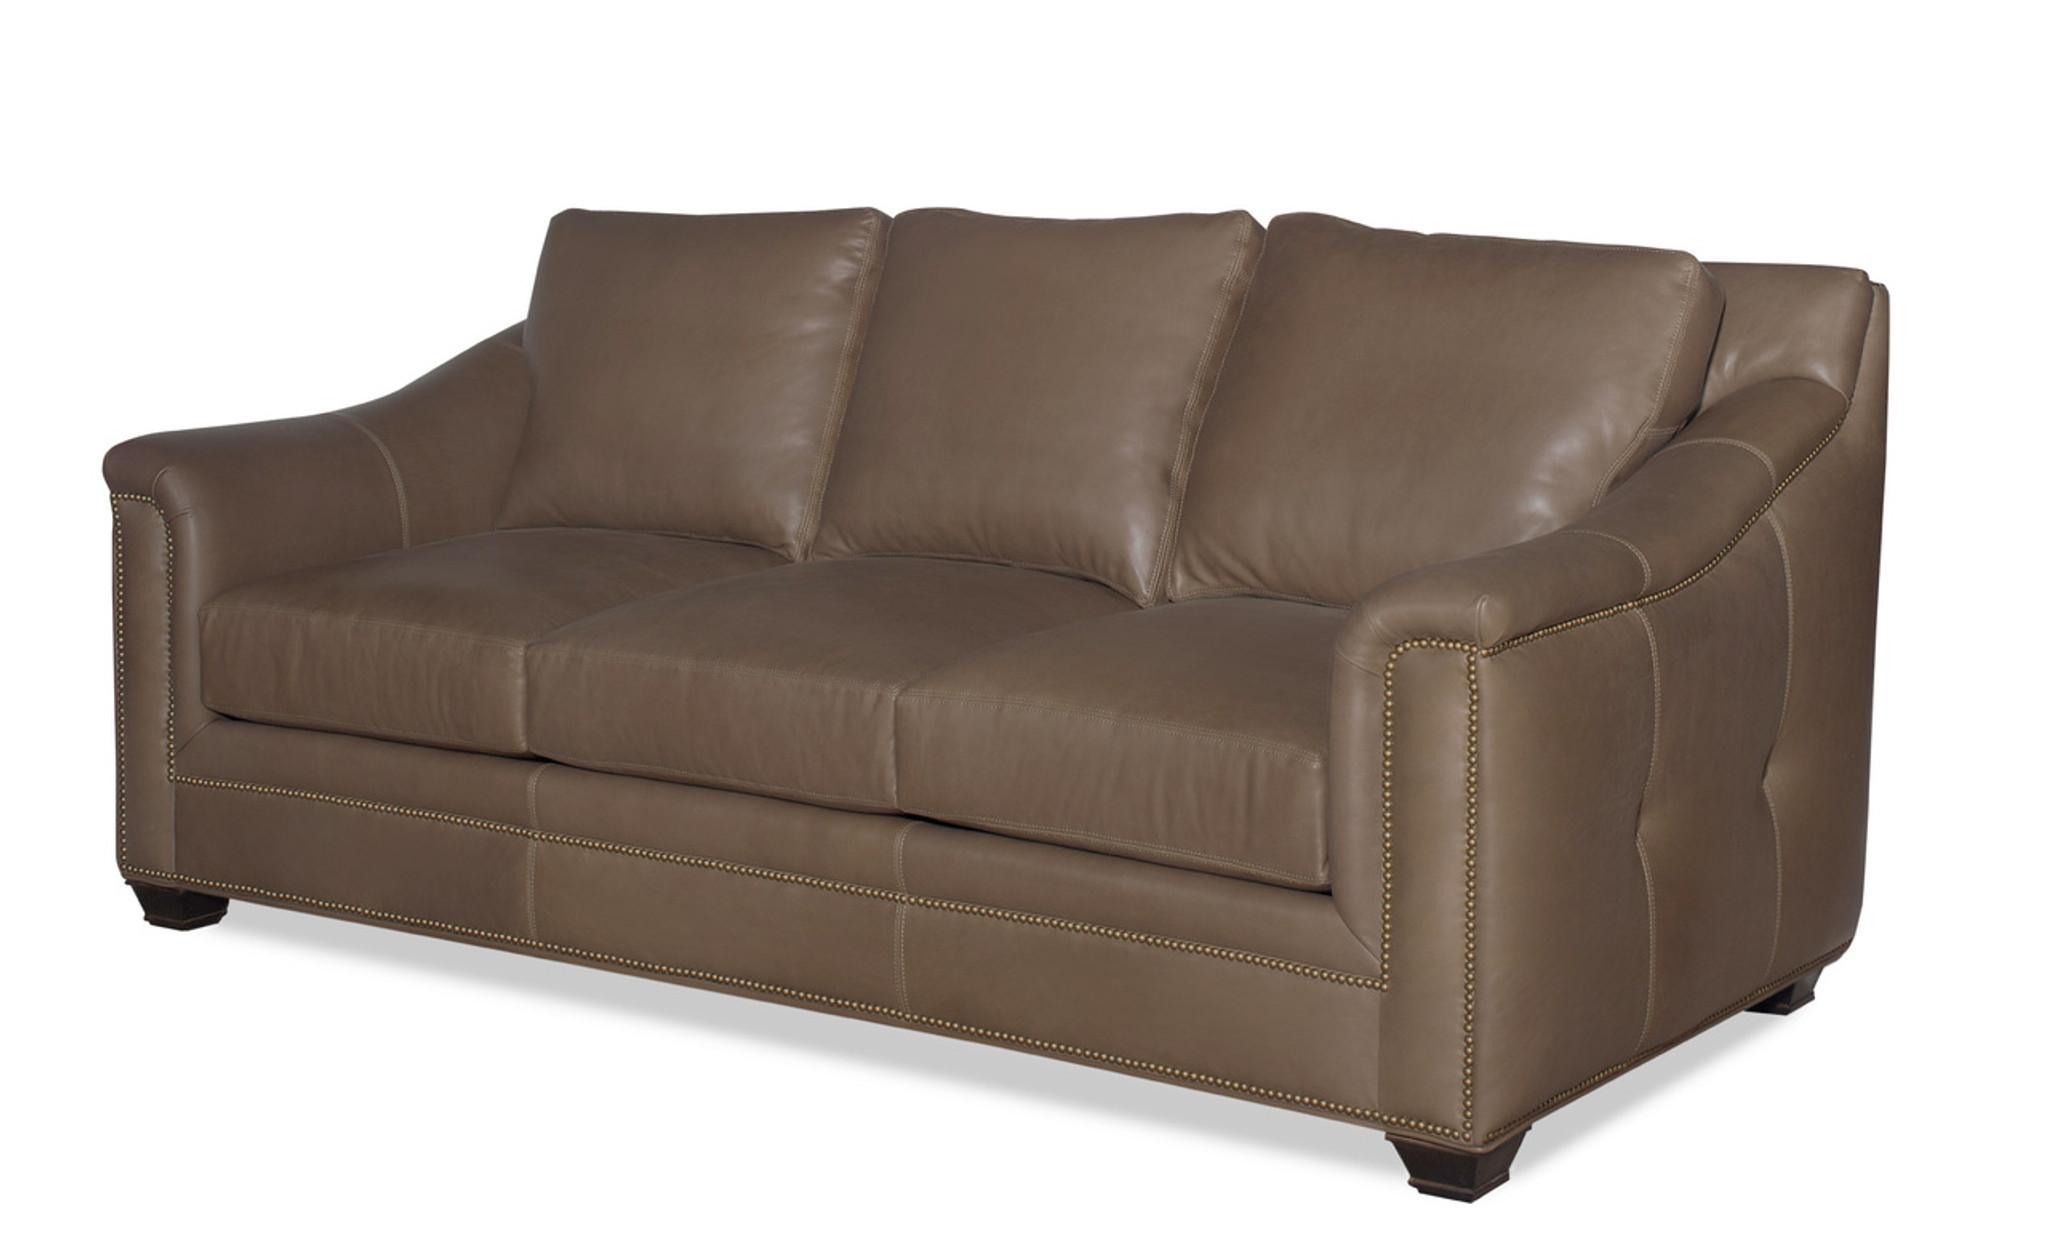 Lachlan Leather Sofa American Heritage Custom Leather